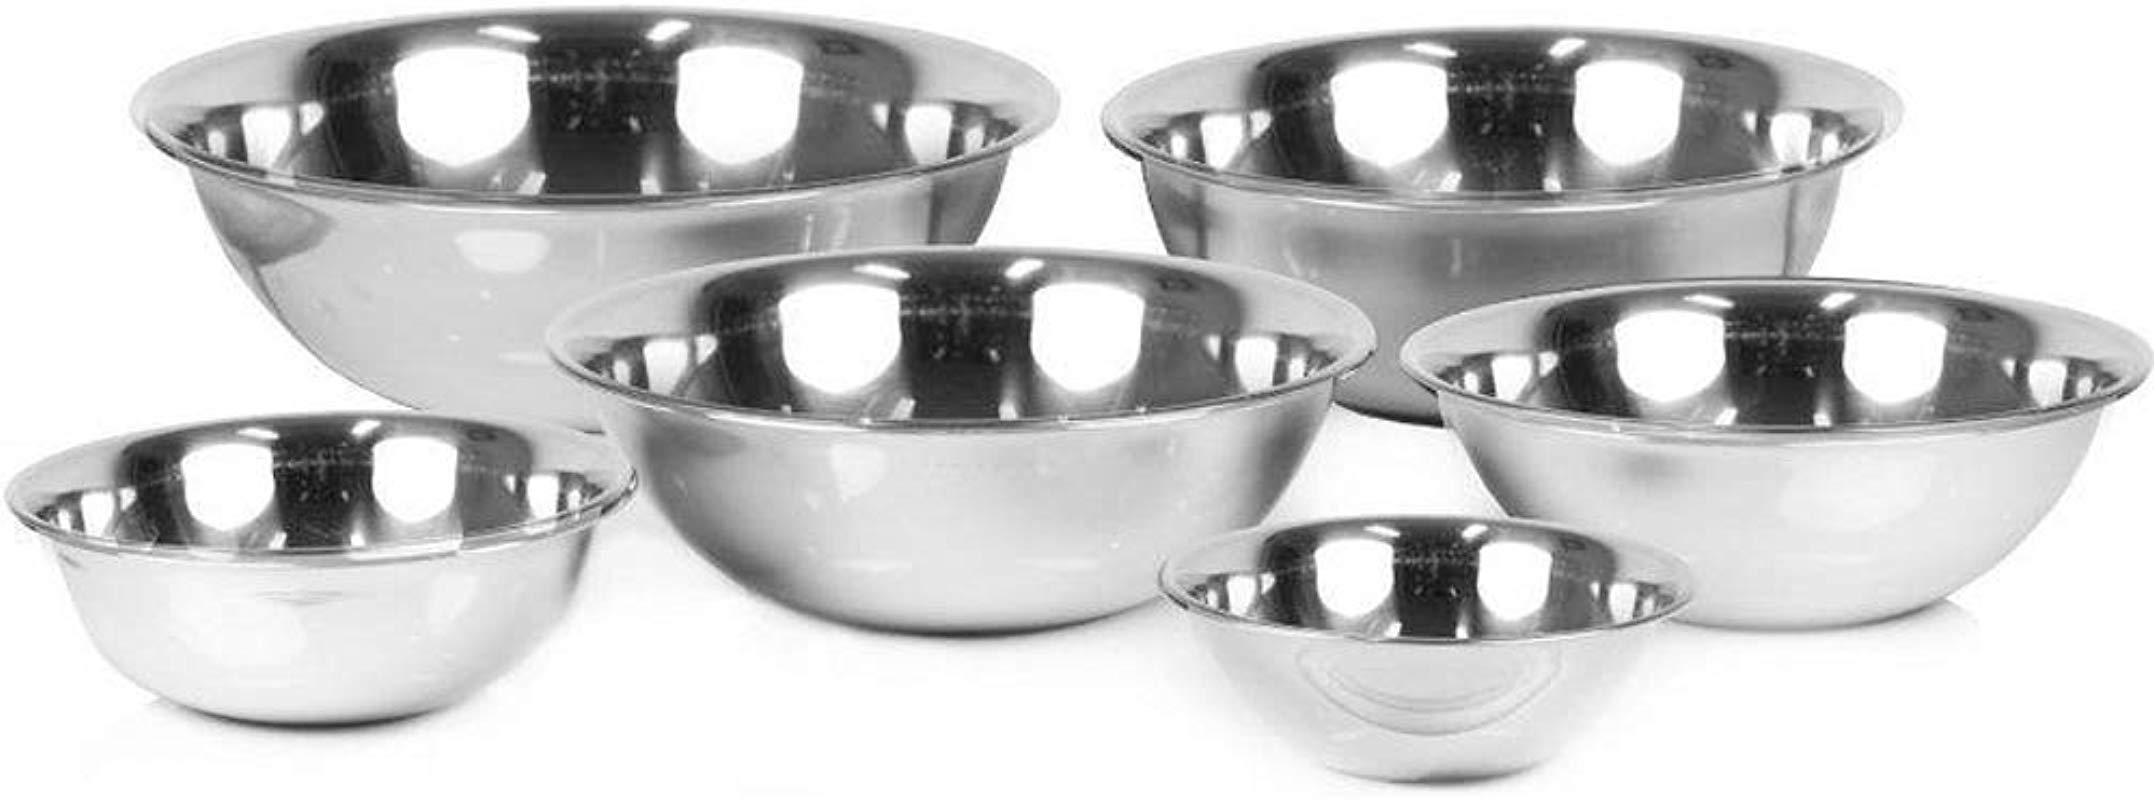 Set Of 6 Stainless Steel Mixing Bowl Set By Tezzorio 3 4 1 1 2 3 4 5 8 Quart Polished Mirror Finish Nesting Flat Base Bowls Commercial Mixing Bowls Prep Bowls